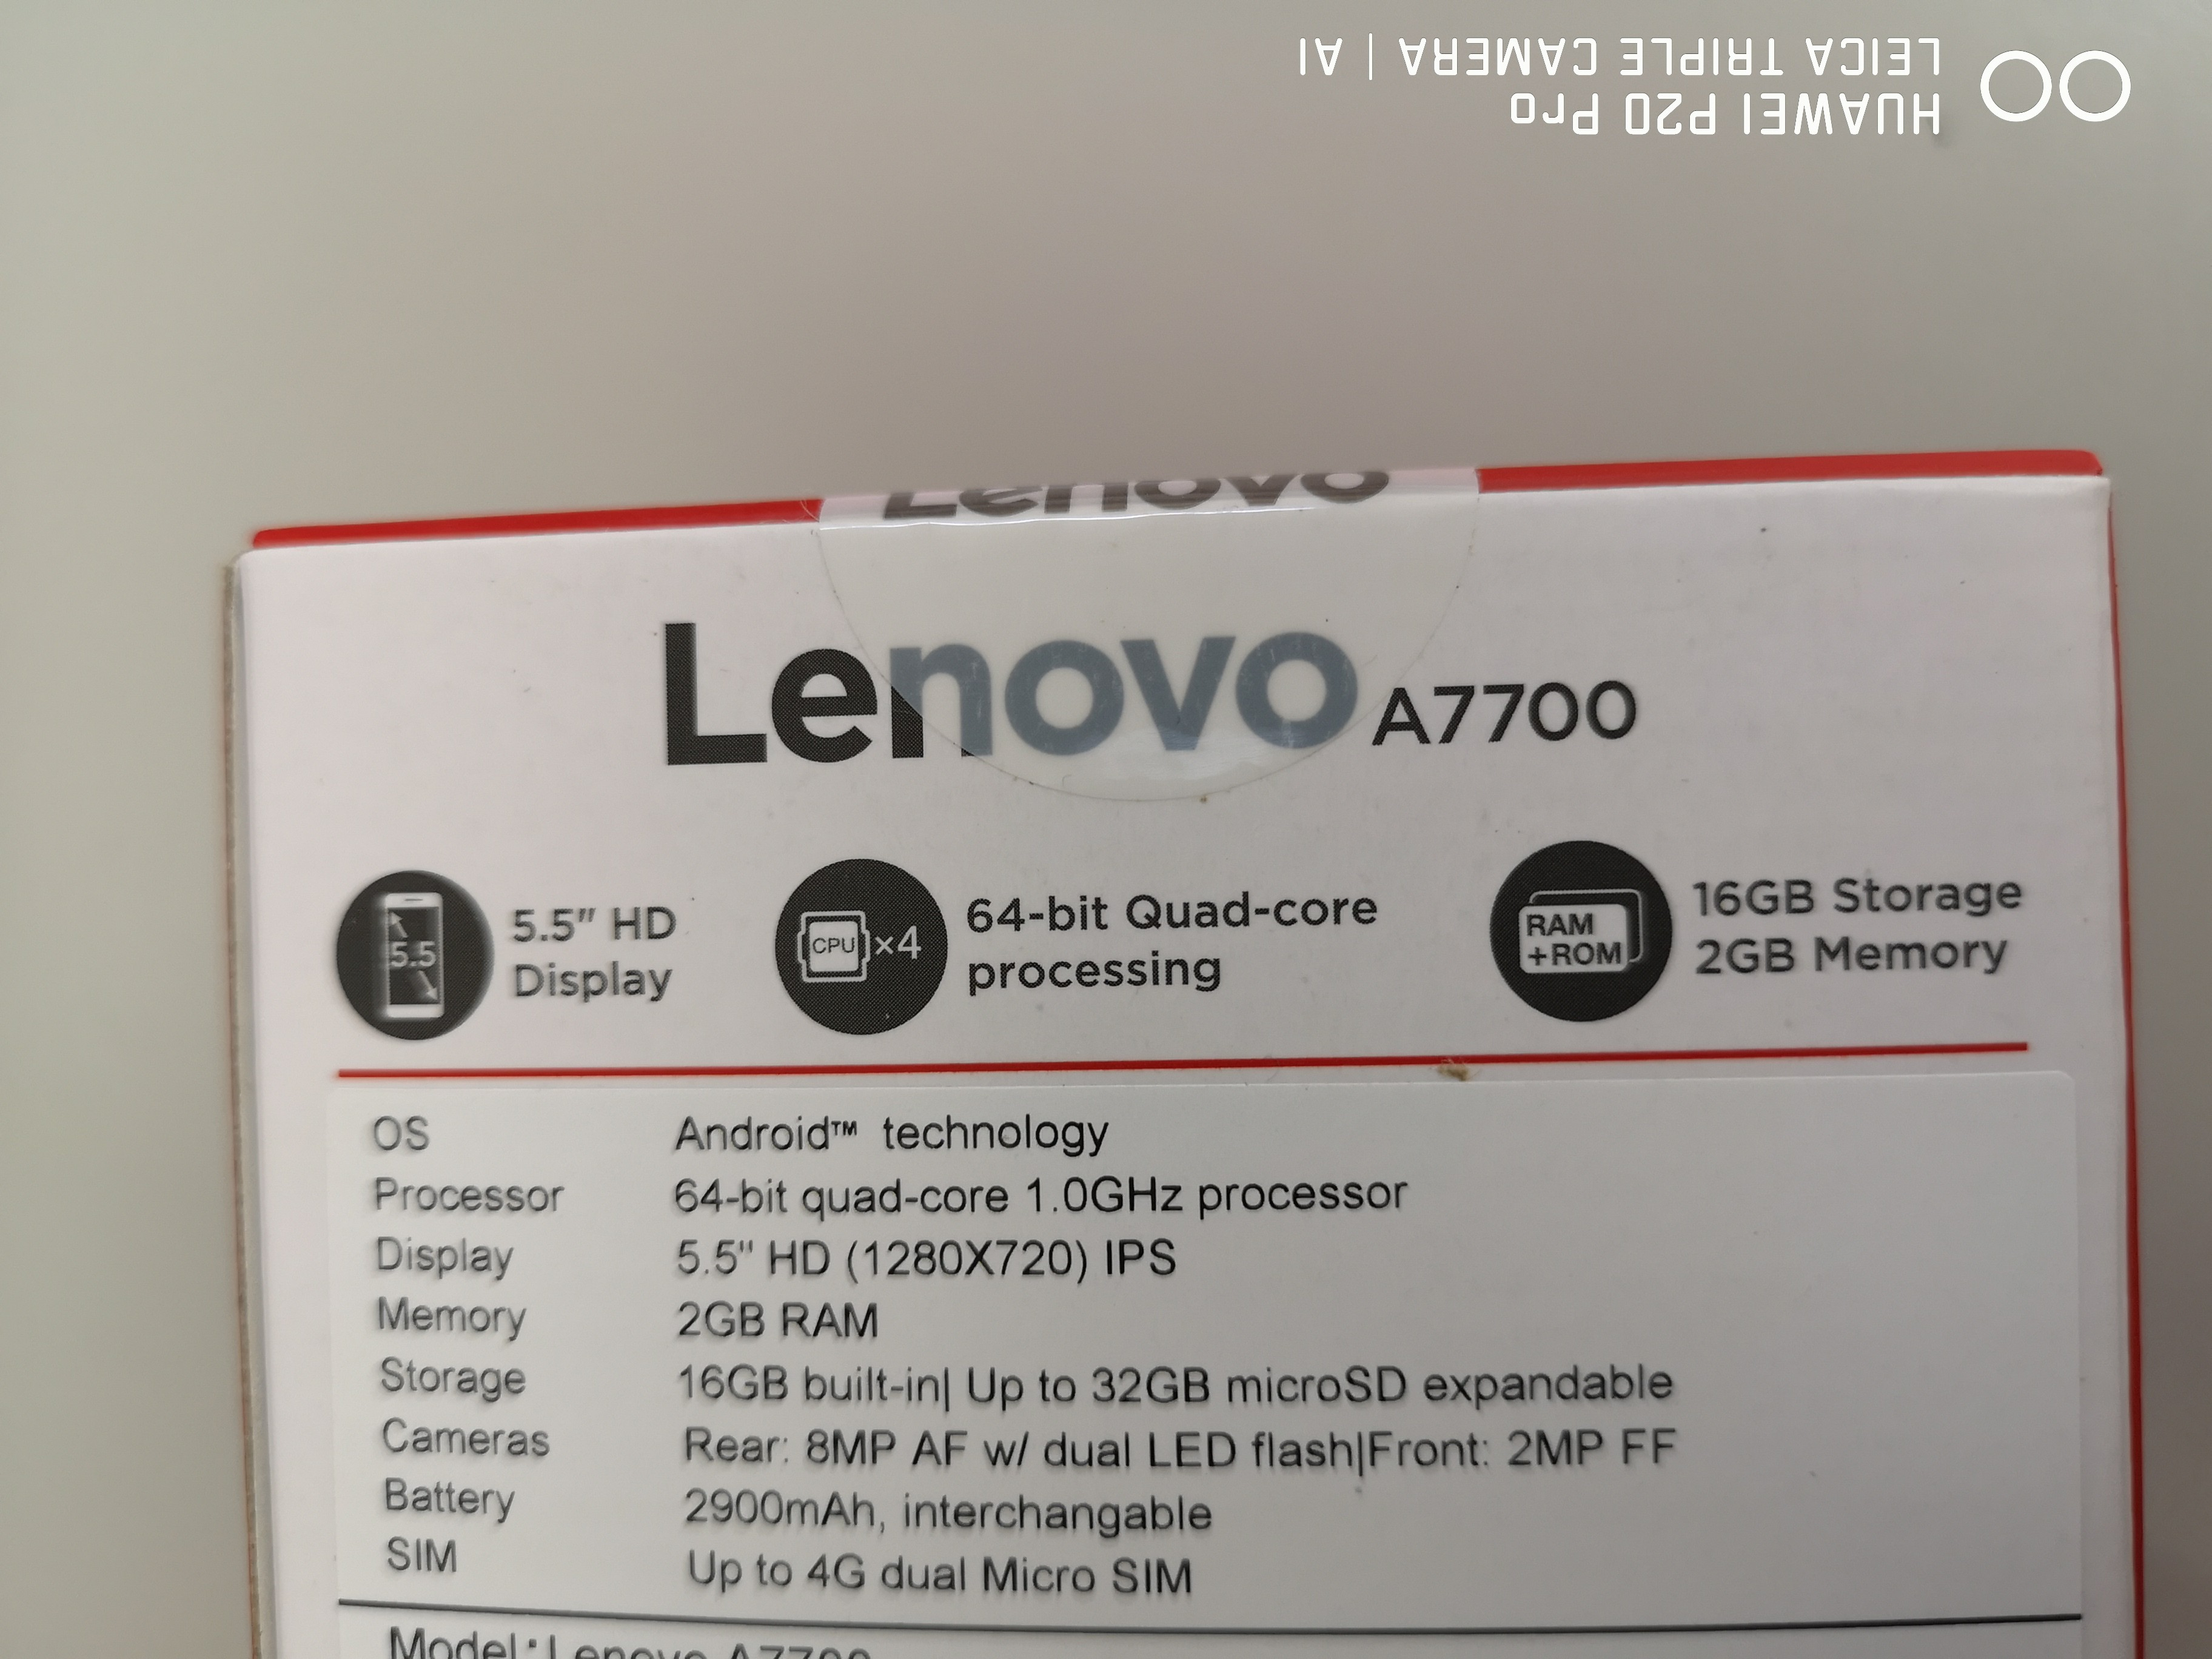 Lenovo A7700 End 5 11 Hkepc Hardware No 16gb Black 24on Callbid